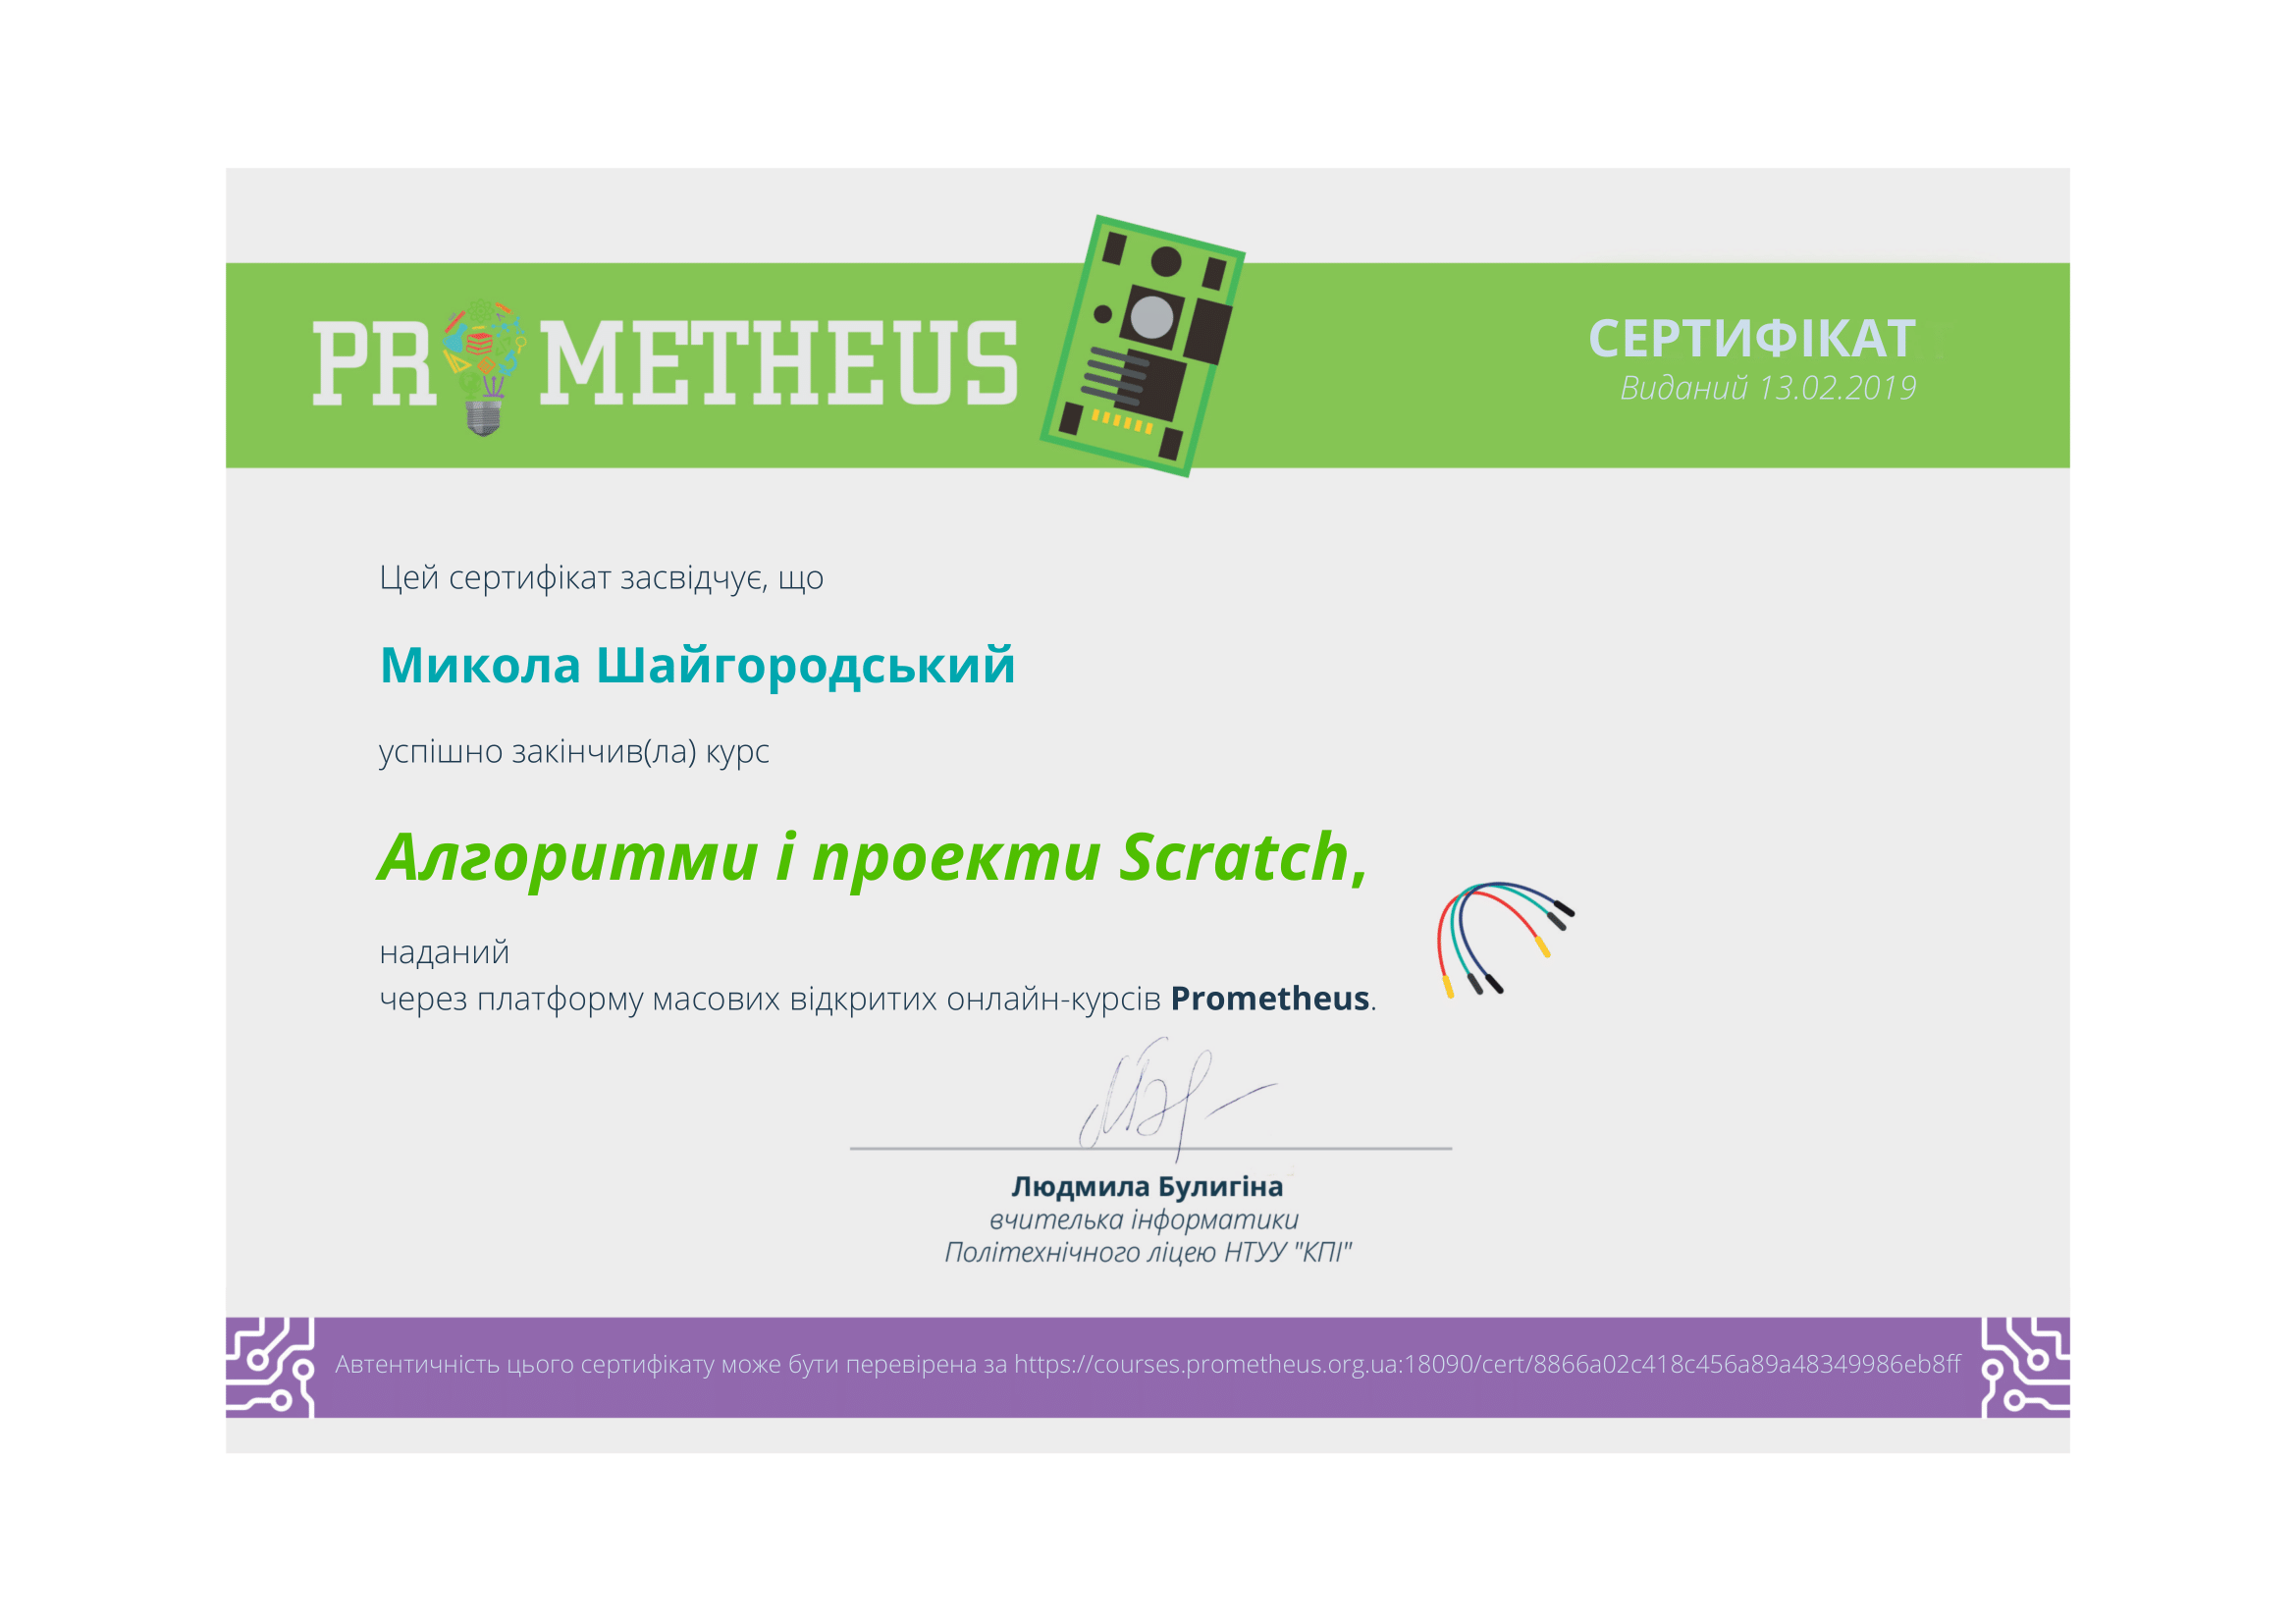 Алгоритми і проекти Scratch (Prometheus)